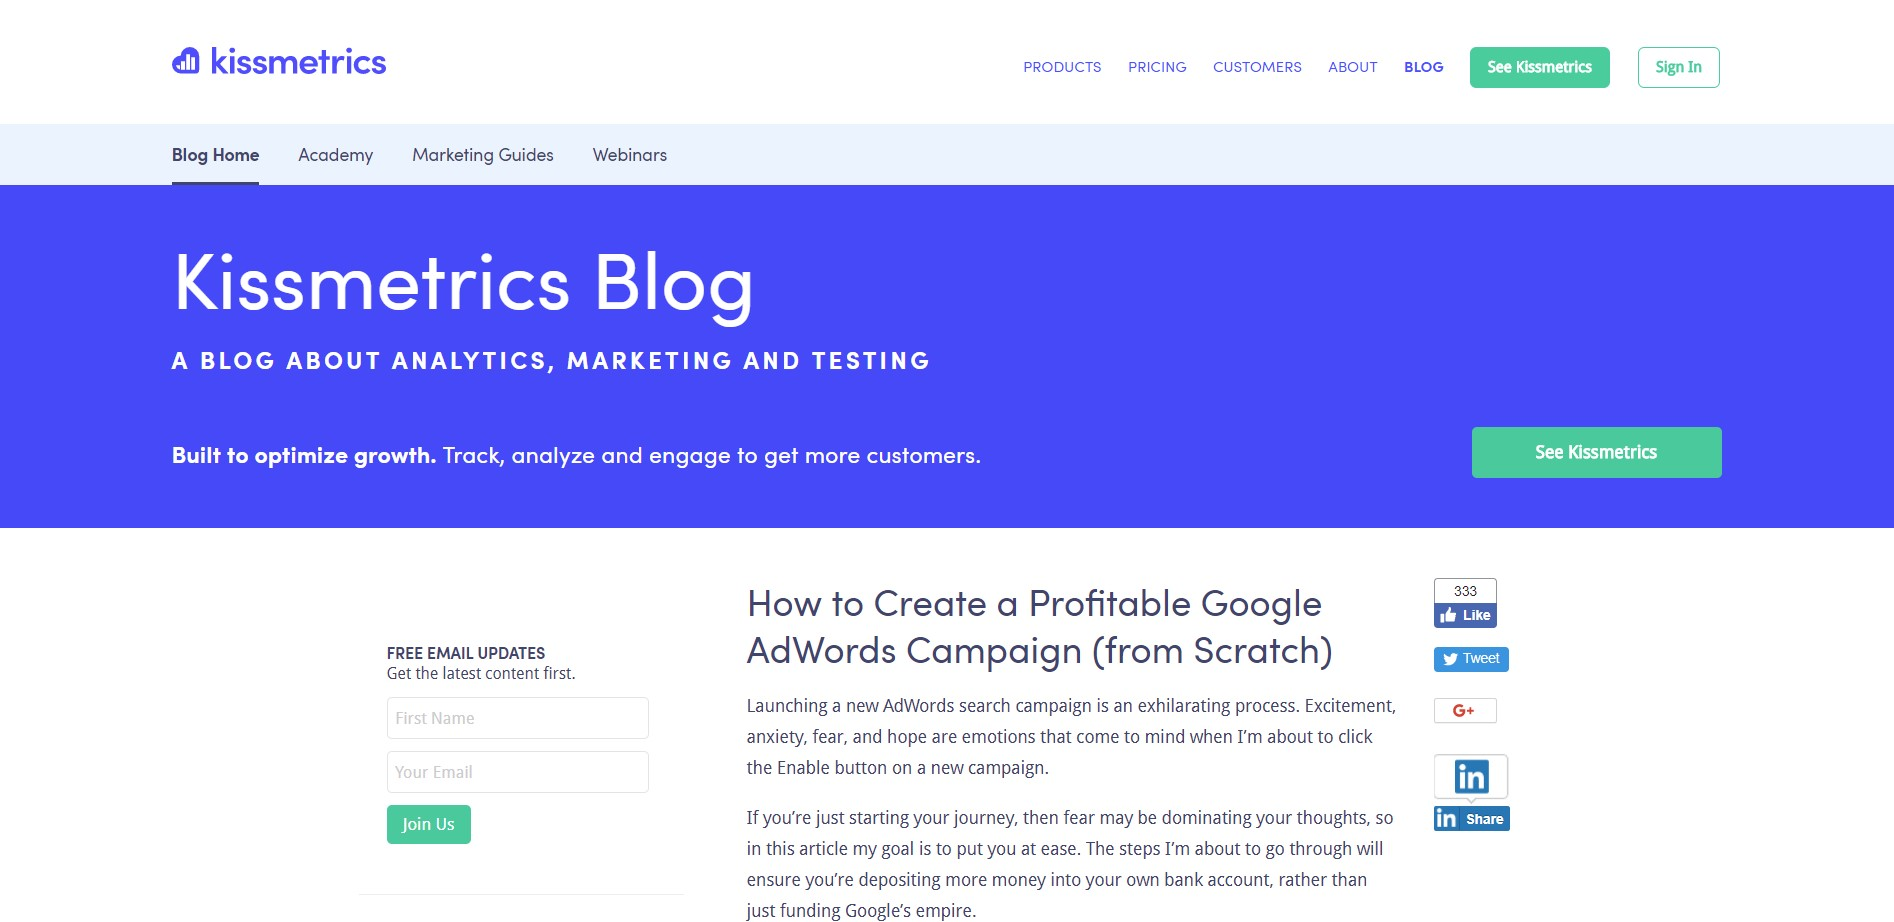 4. Kissmetrics – How to Create a Profitable Google AdWords Campaign (from  Scratch)